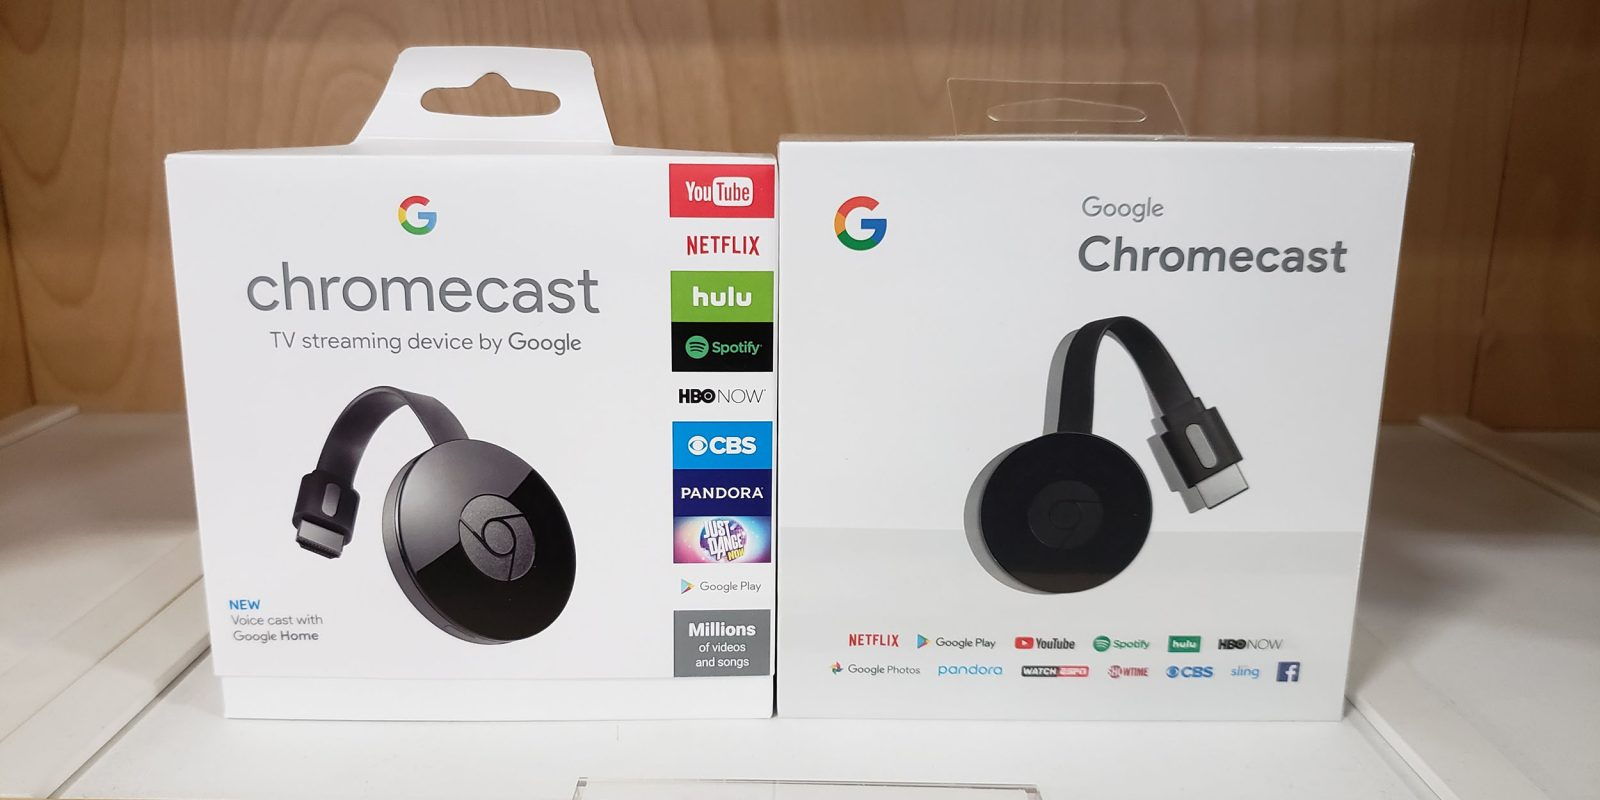 Upcoming Google Chromecast w/ Bluetooth will also feature improved